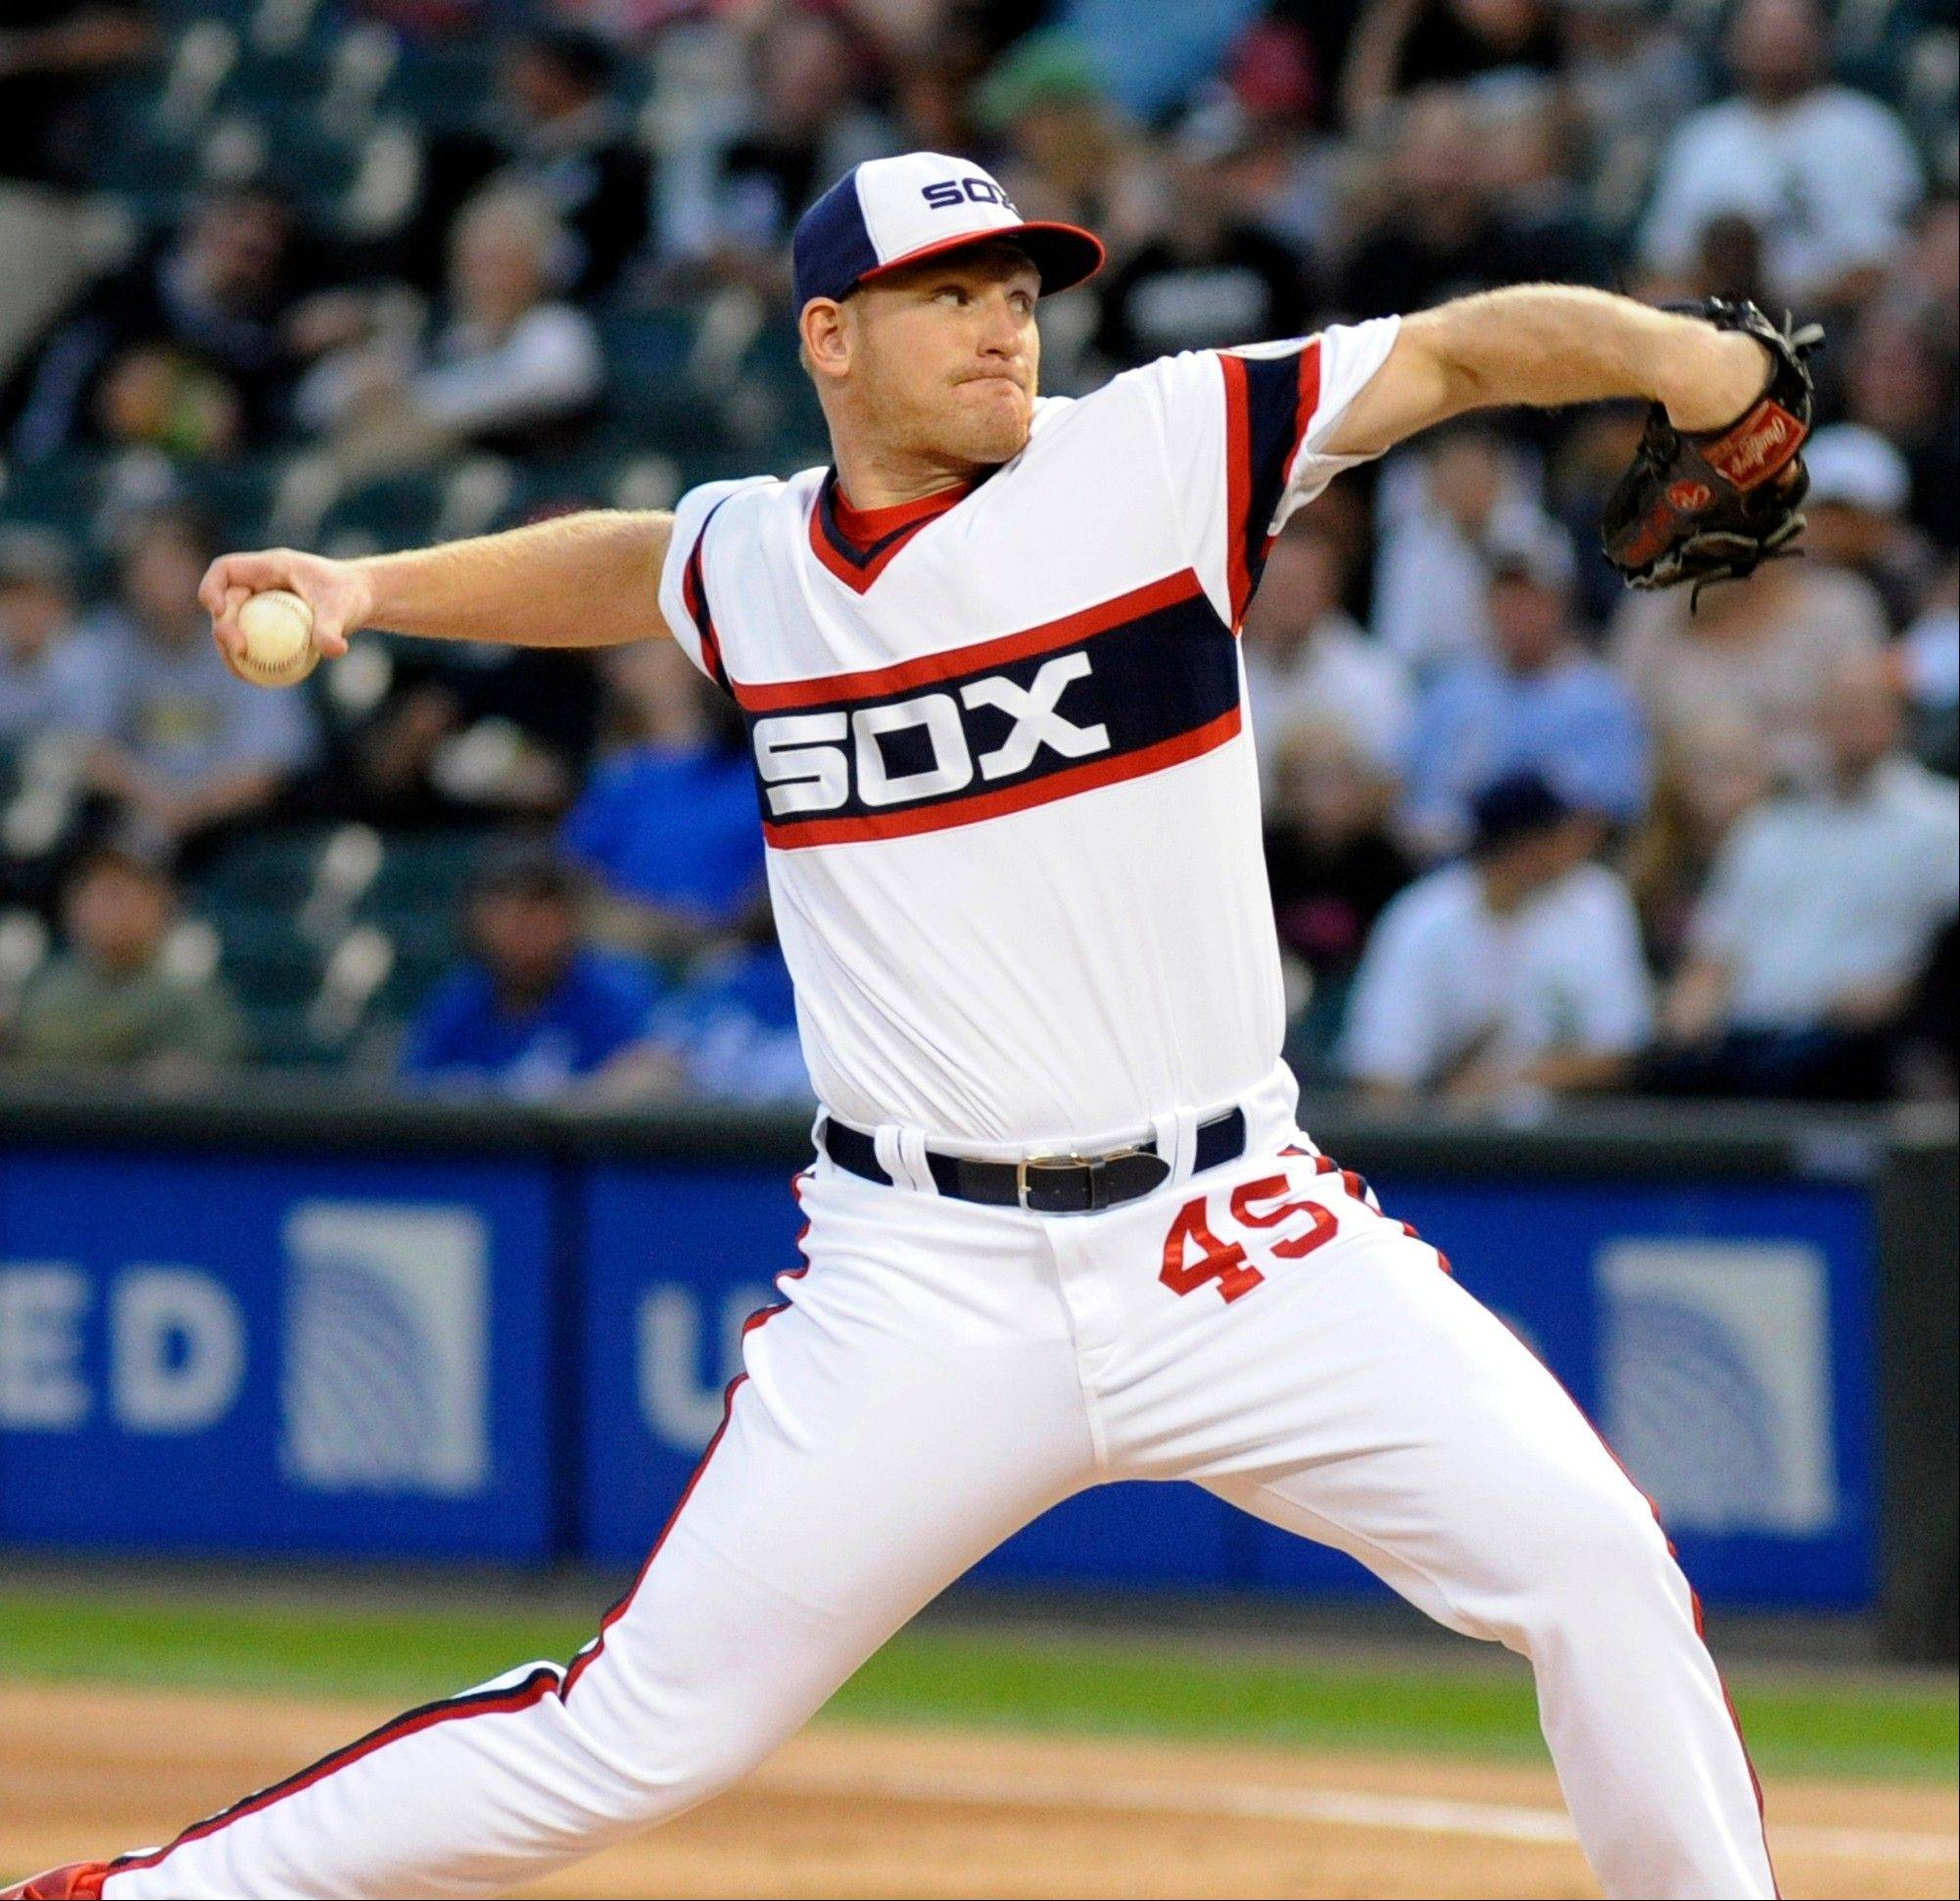 White Sox pitcher Erik Johnson allowed 5 runs and struck out 13 over 18 innings in his final 3 starts.